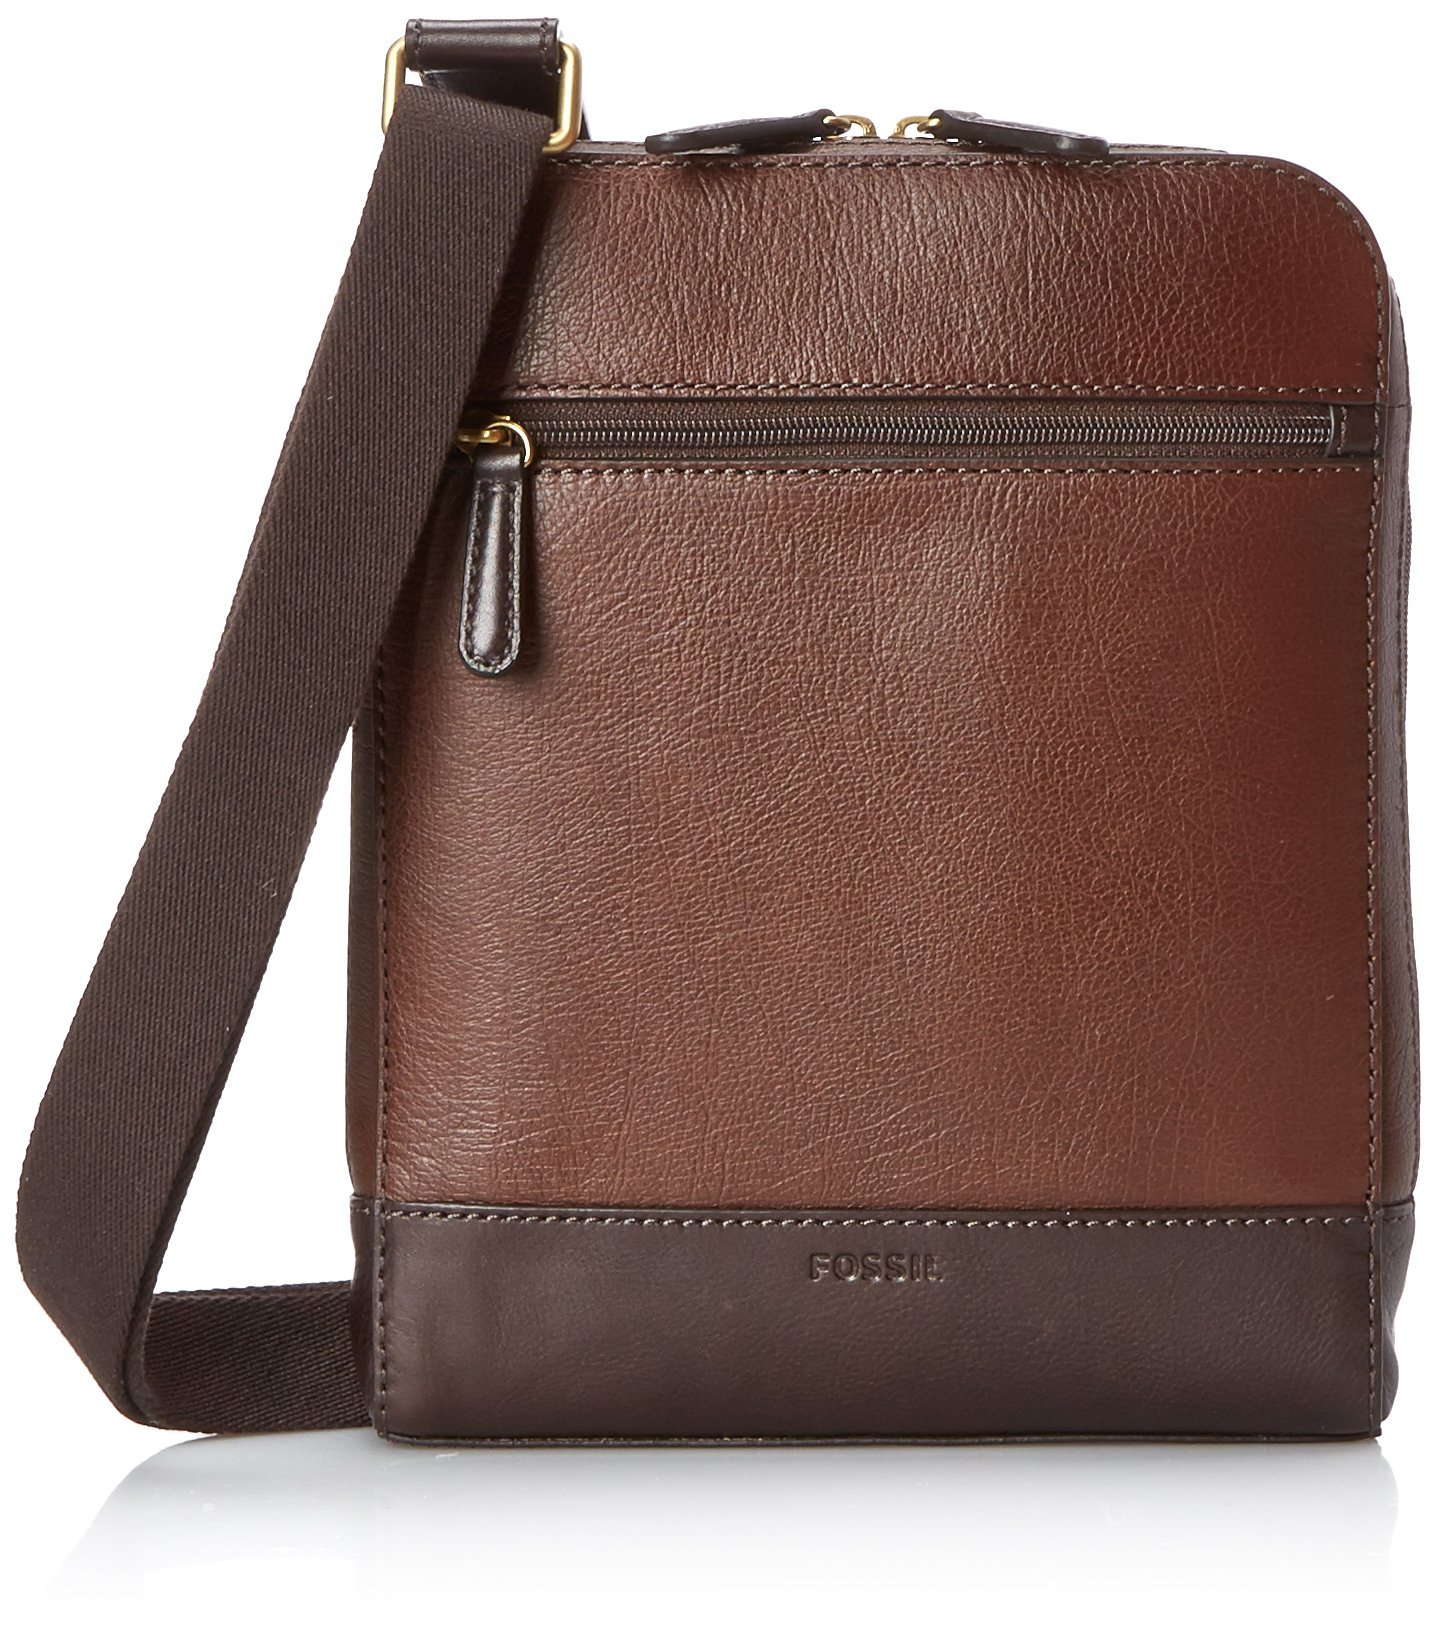 Fossil Rory Courier Bag, Brown, One Size